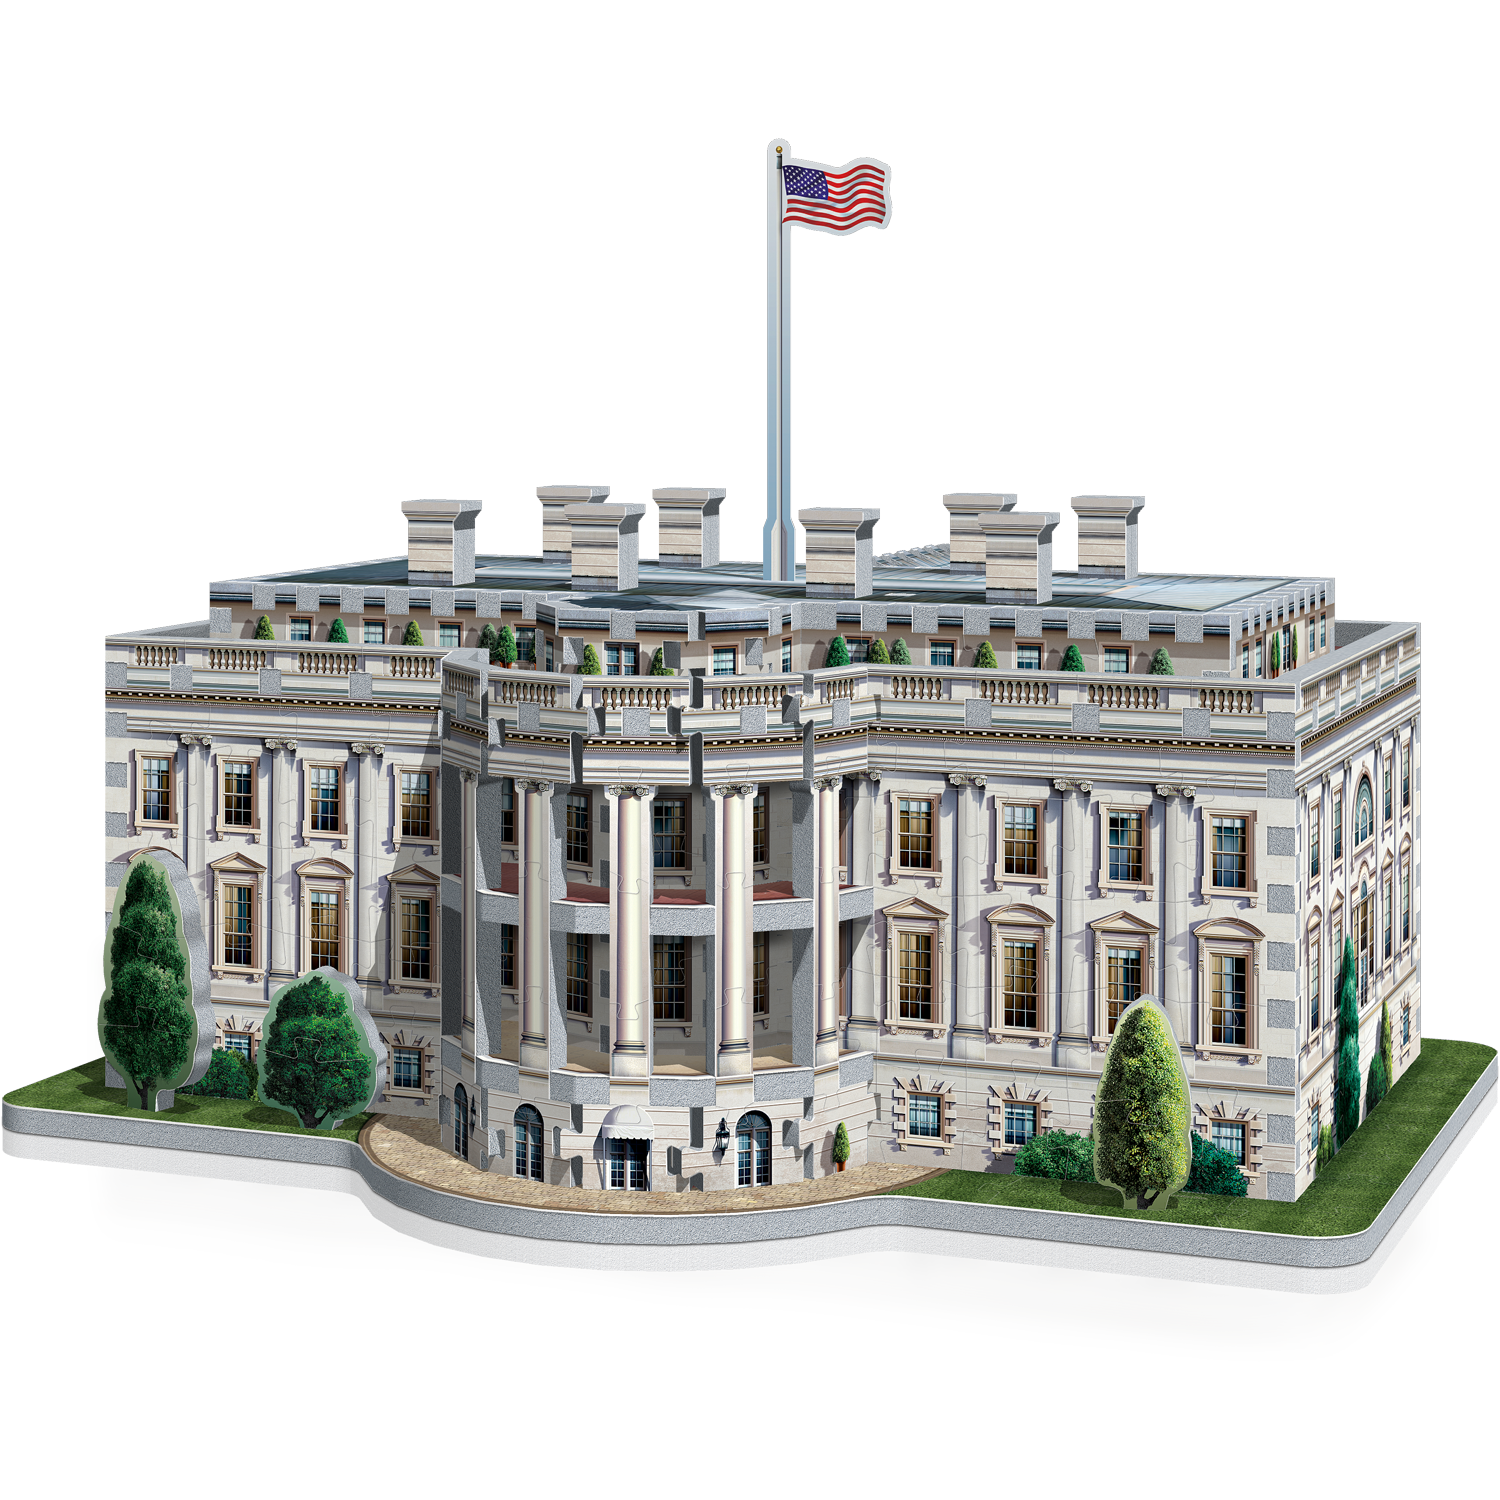 The White House 3d Puzzle 490 Pieces From Wrebbit 3d Washington United States White House 3d Jigsaw Puzzles 3d Puzzles